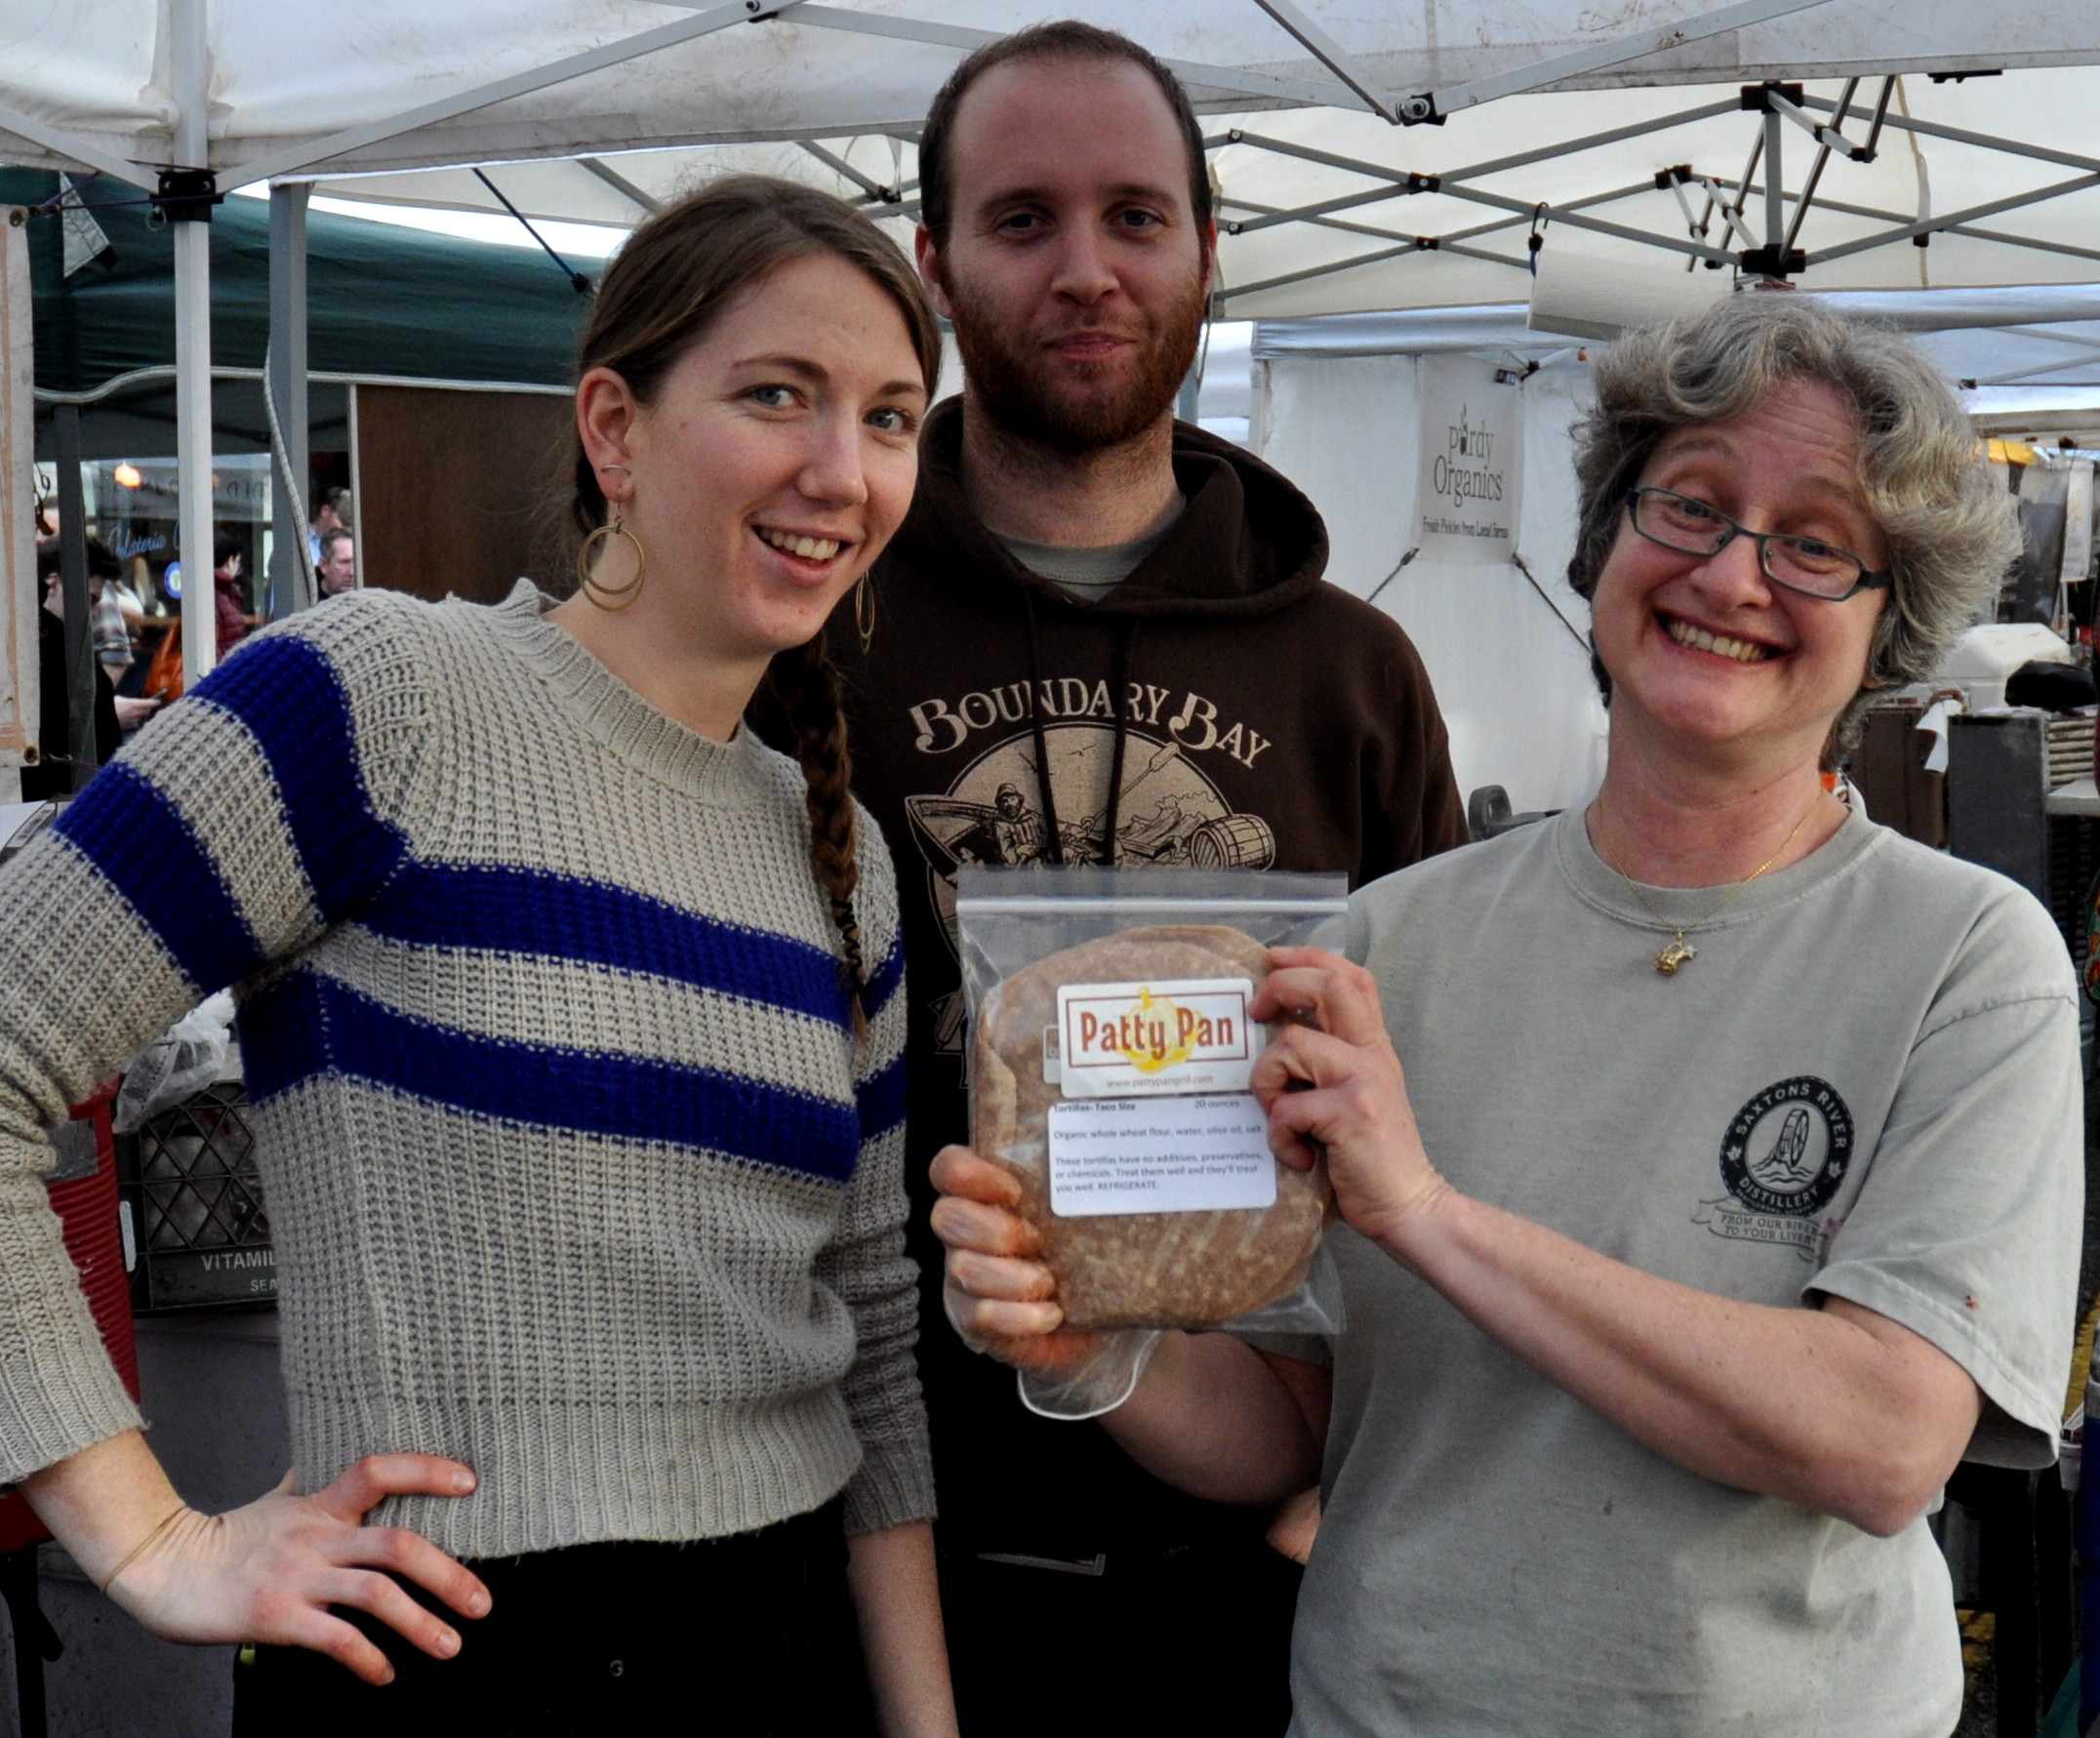 The Patty Pan Grill crew, proud parents of new tortillas at Ballard Farmers Market. Copyright Zachary D. Lyons.